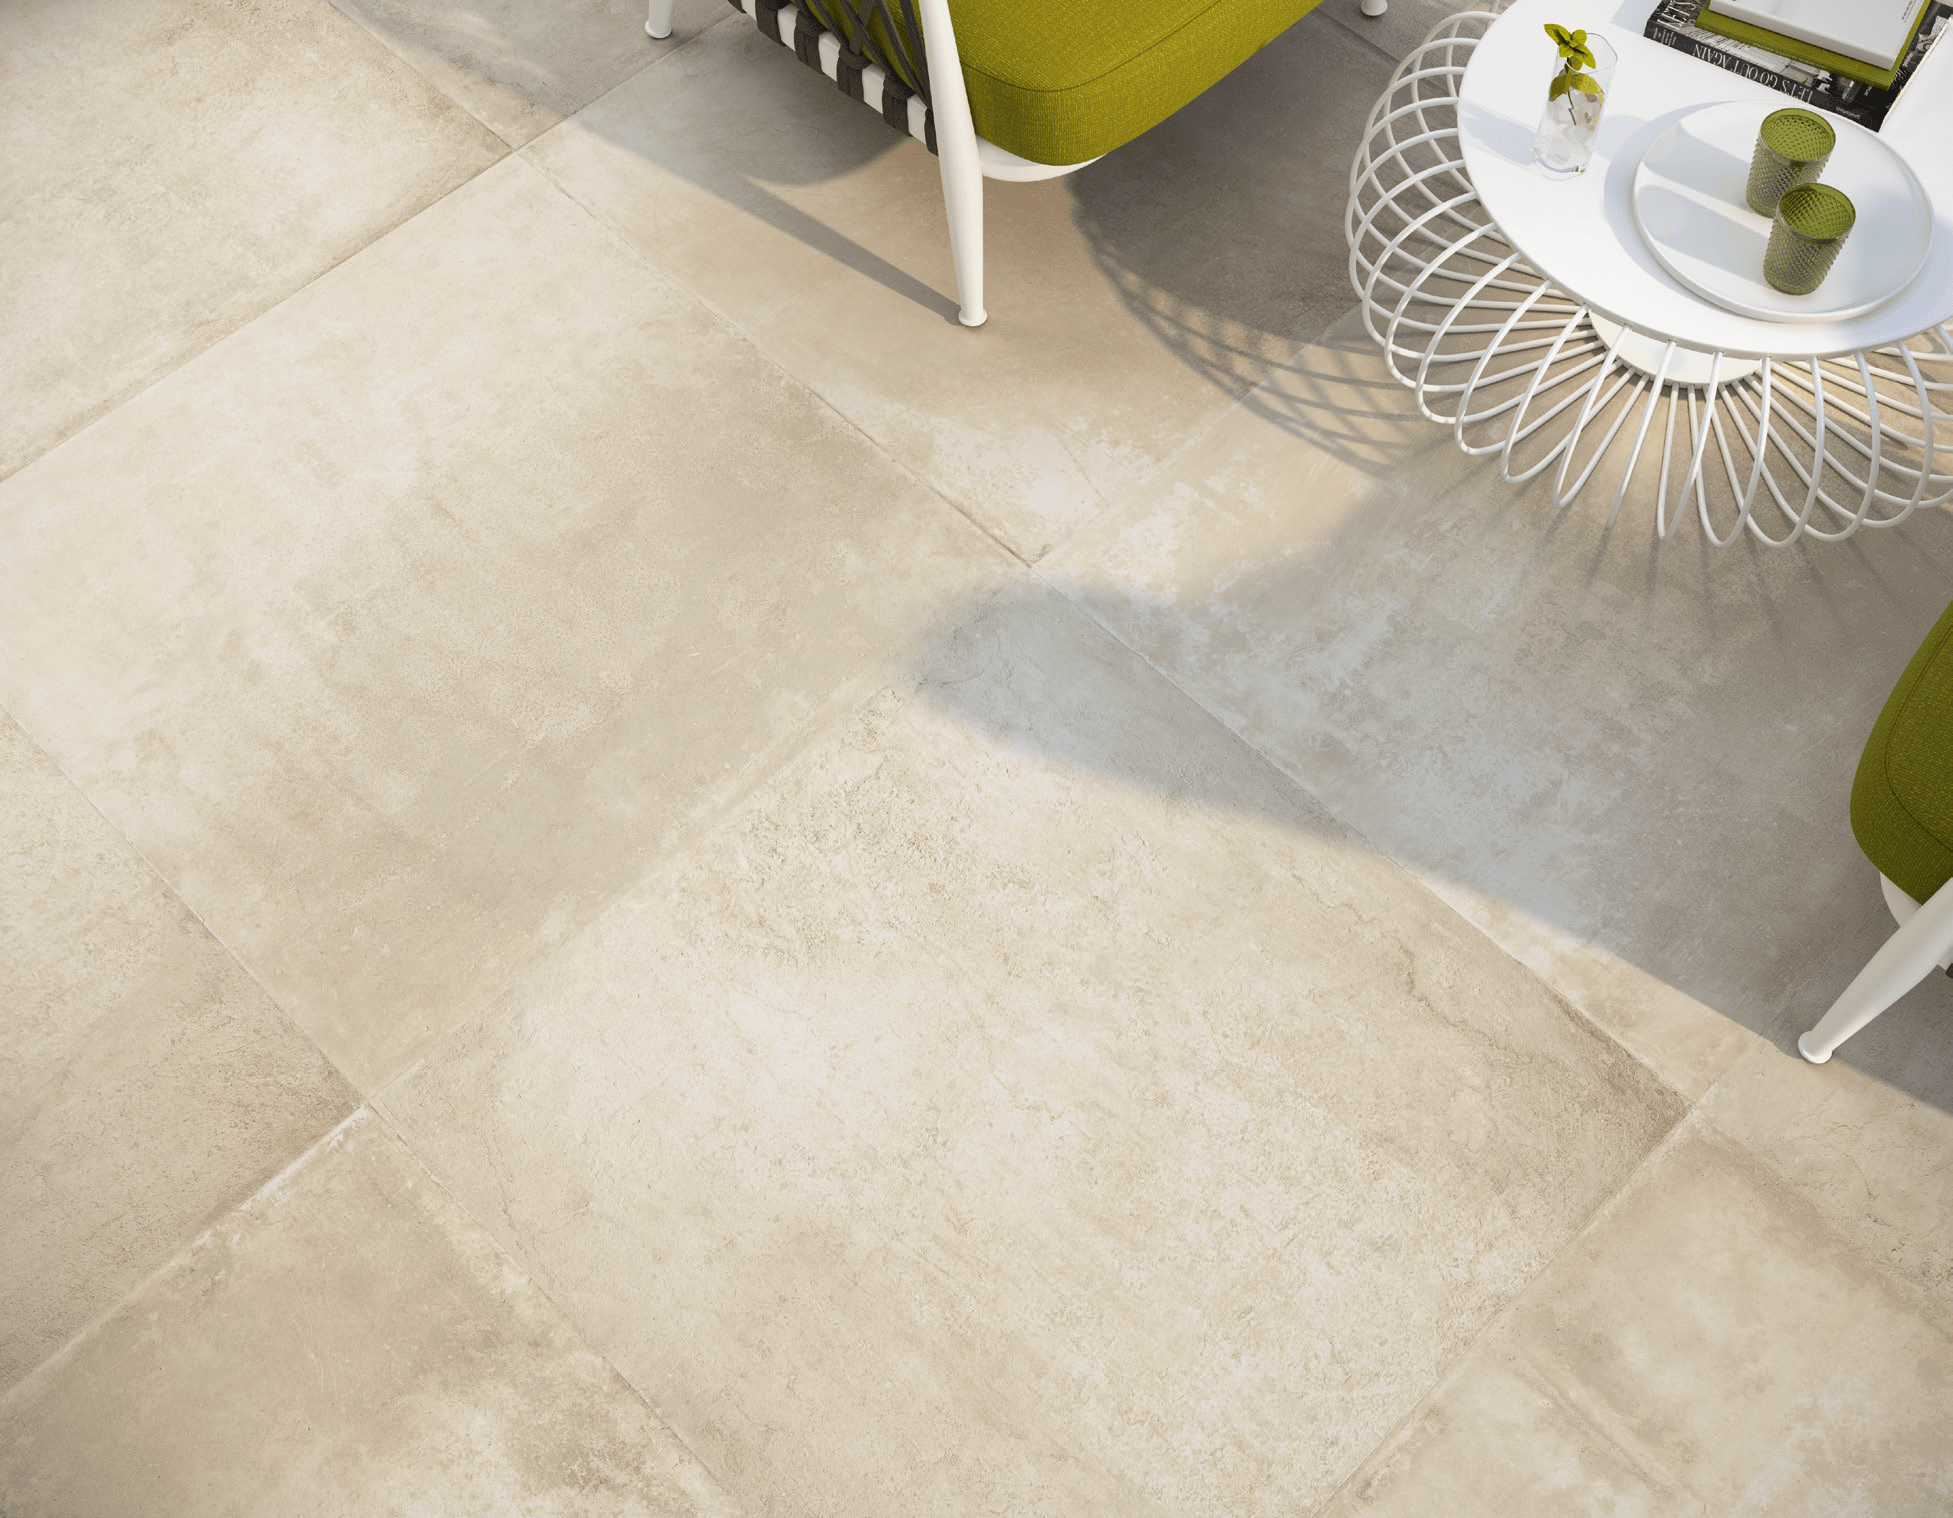 amb neogrip - Porcelanite ONE